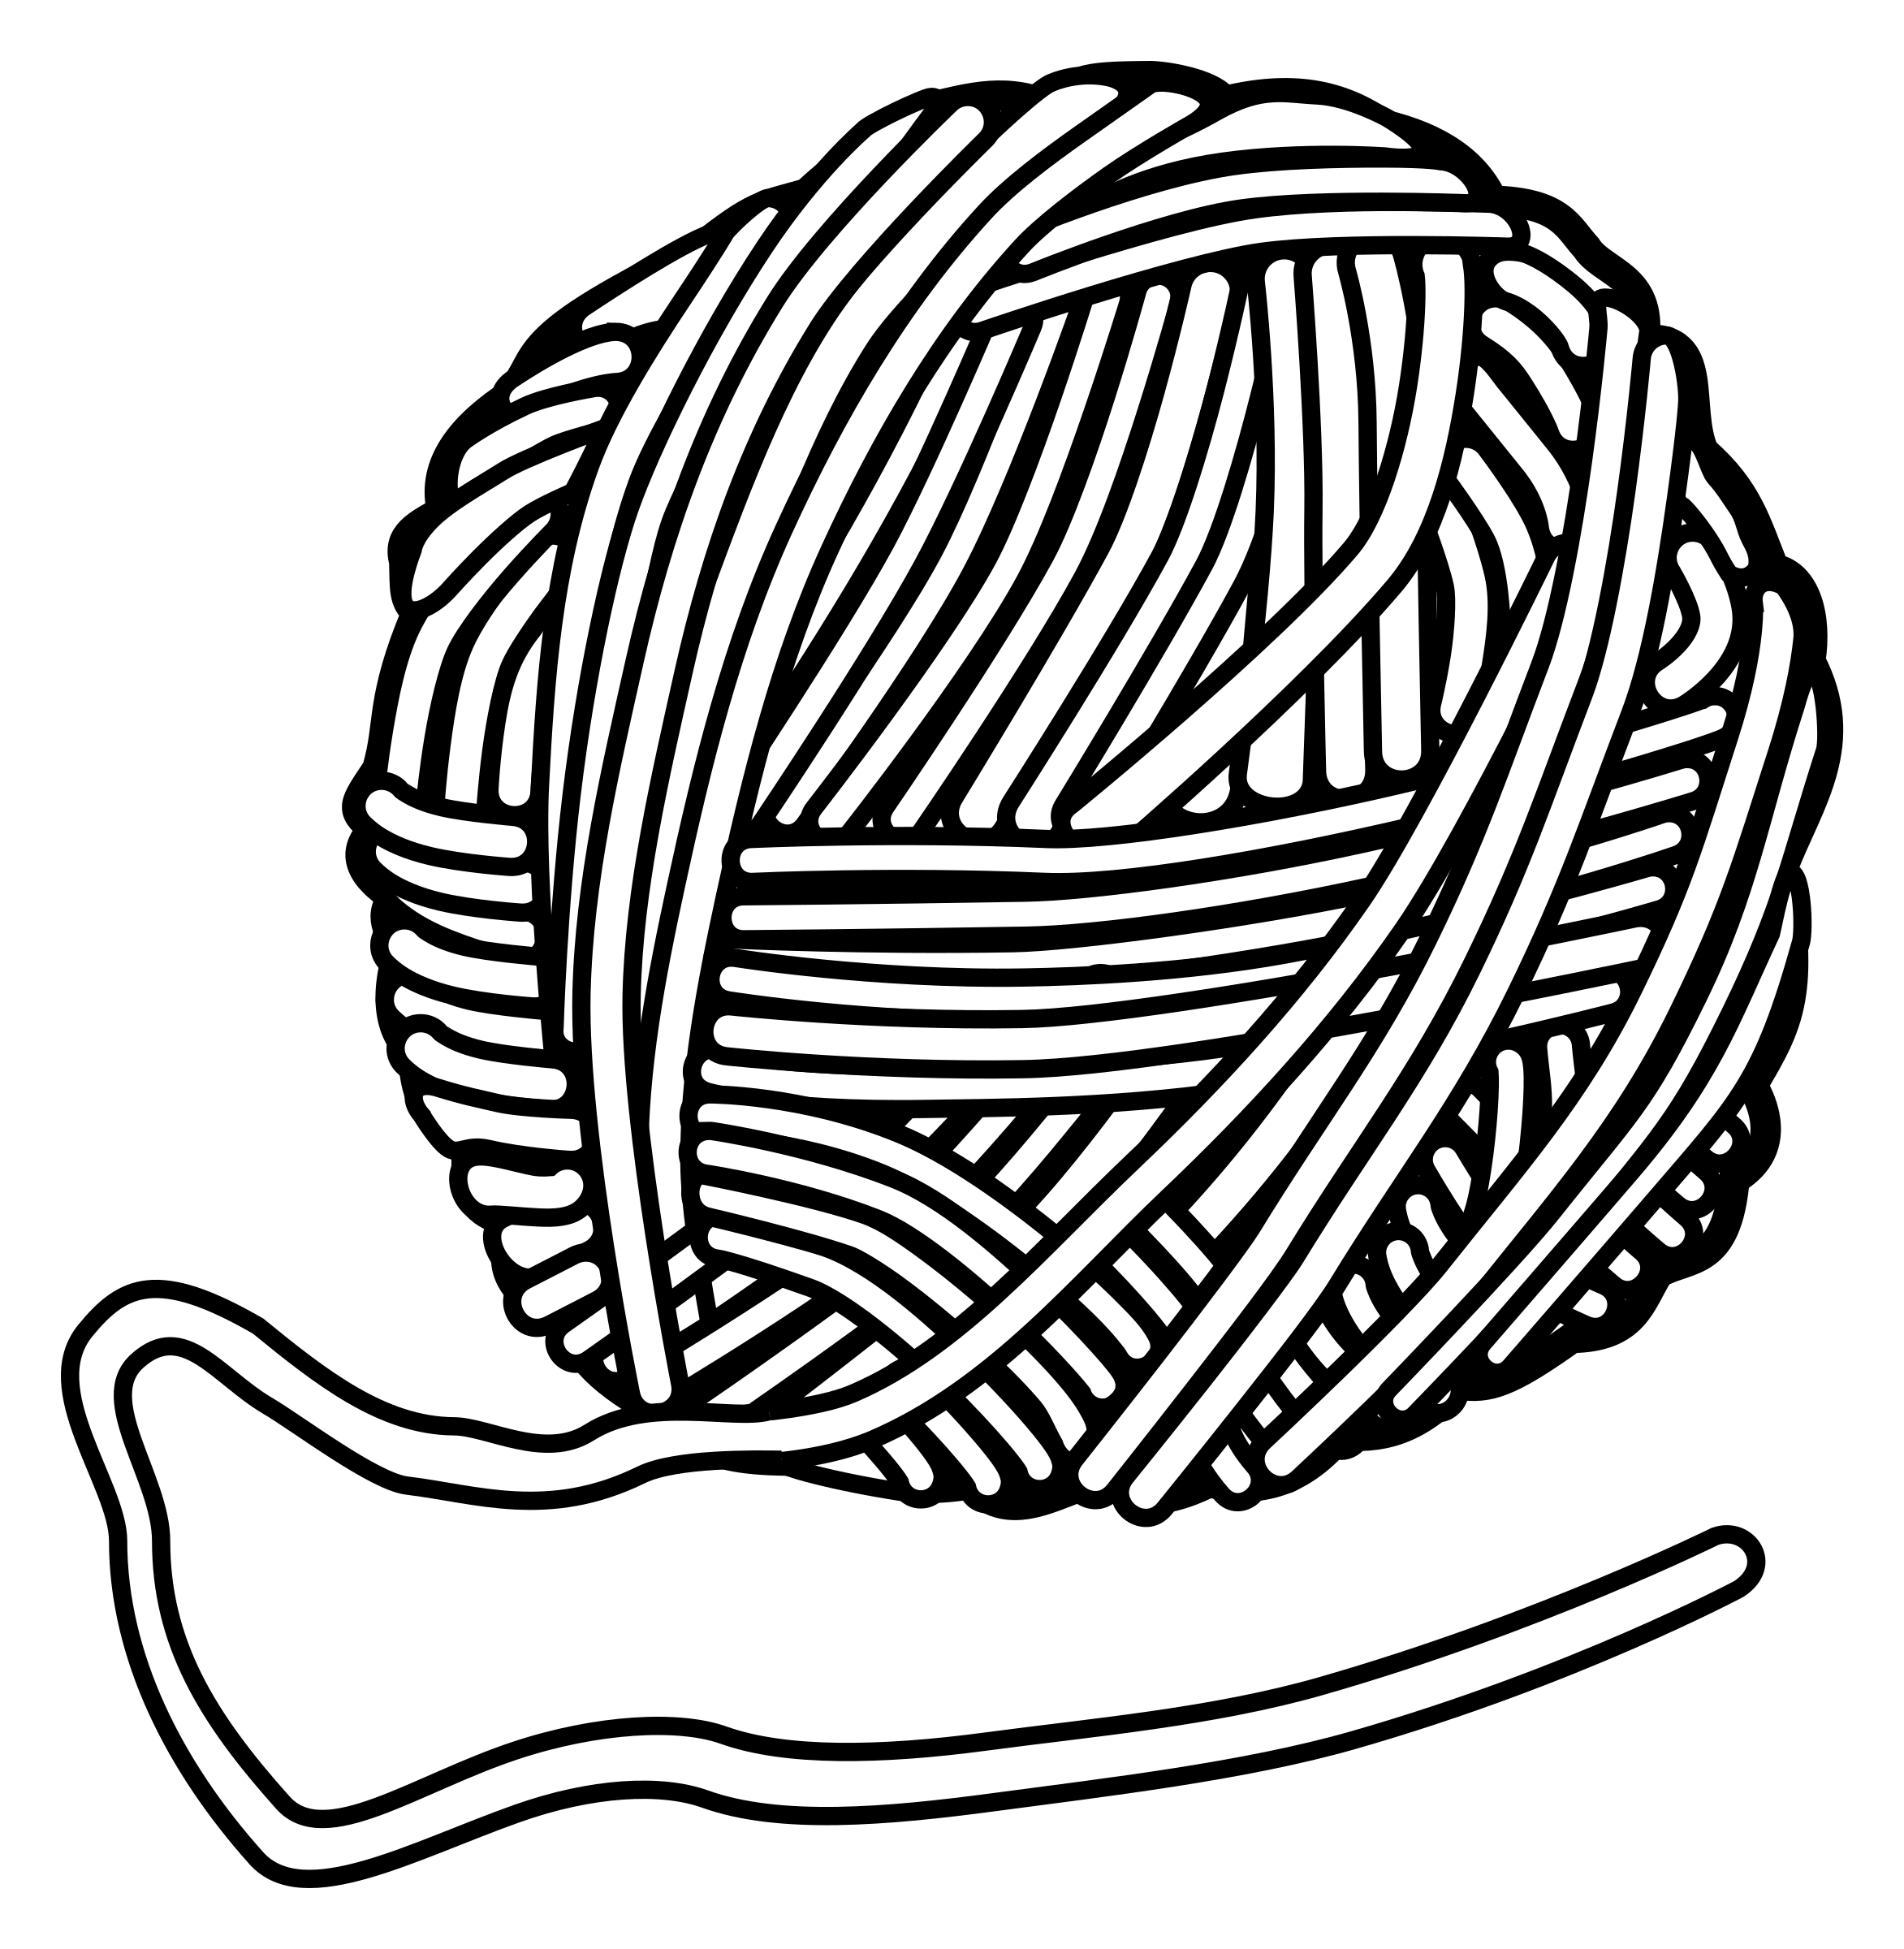 Transparent yarn coloring page. Banner royalty free